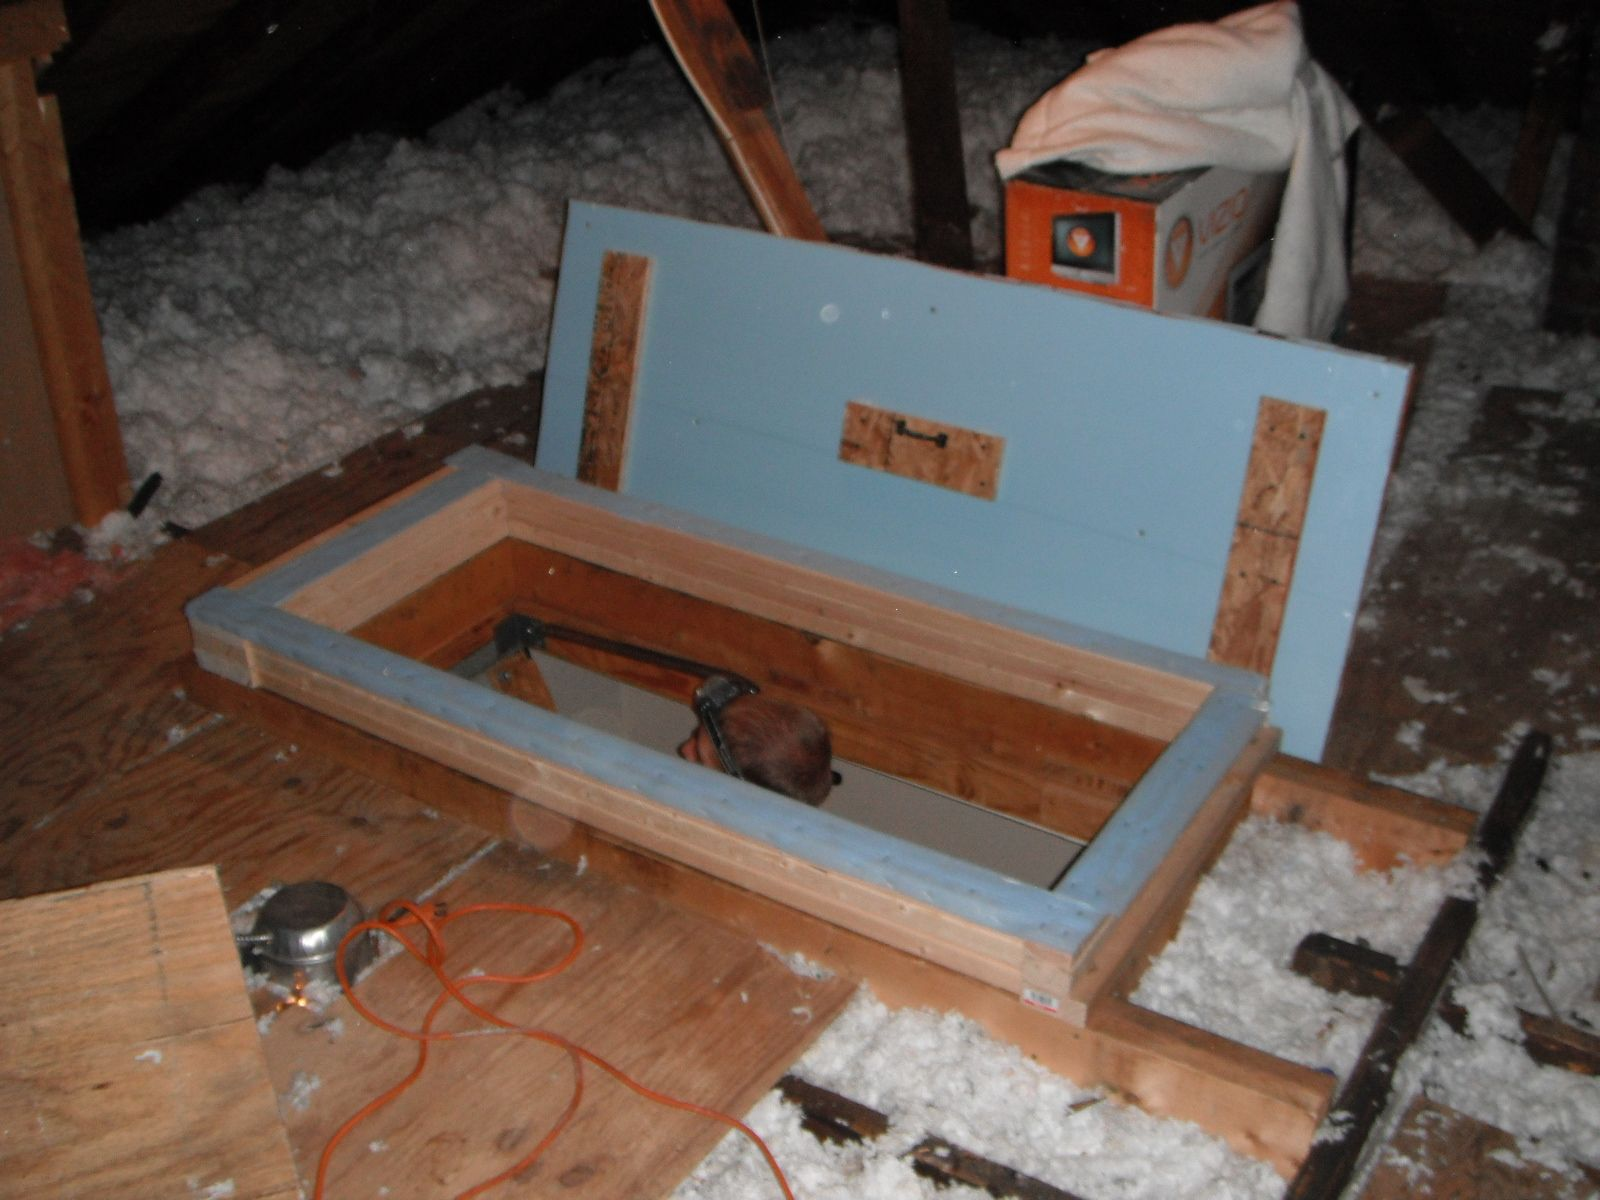 Custom Attic Stair Covers & Custom Attic Stair Covers   House ideau0027s   Pinterest   Attic stairs ...